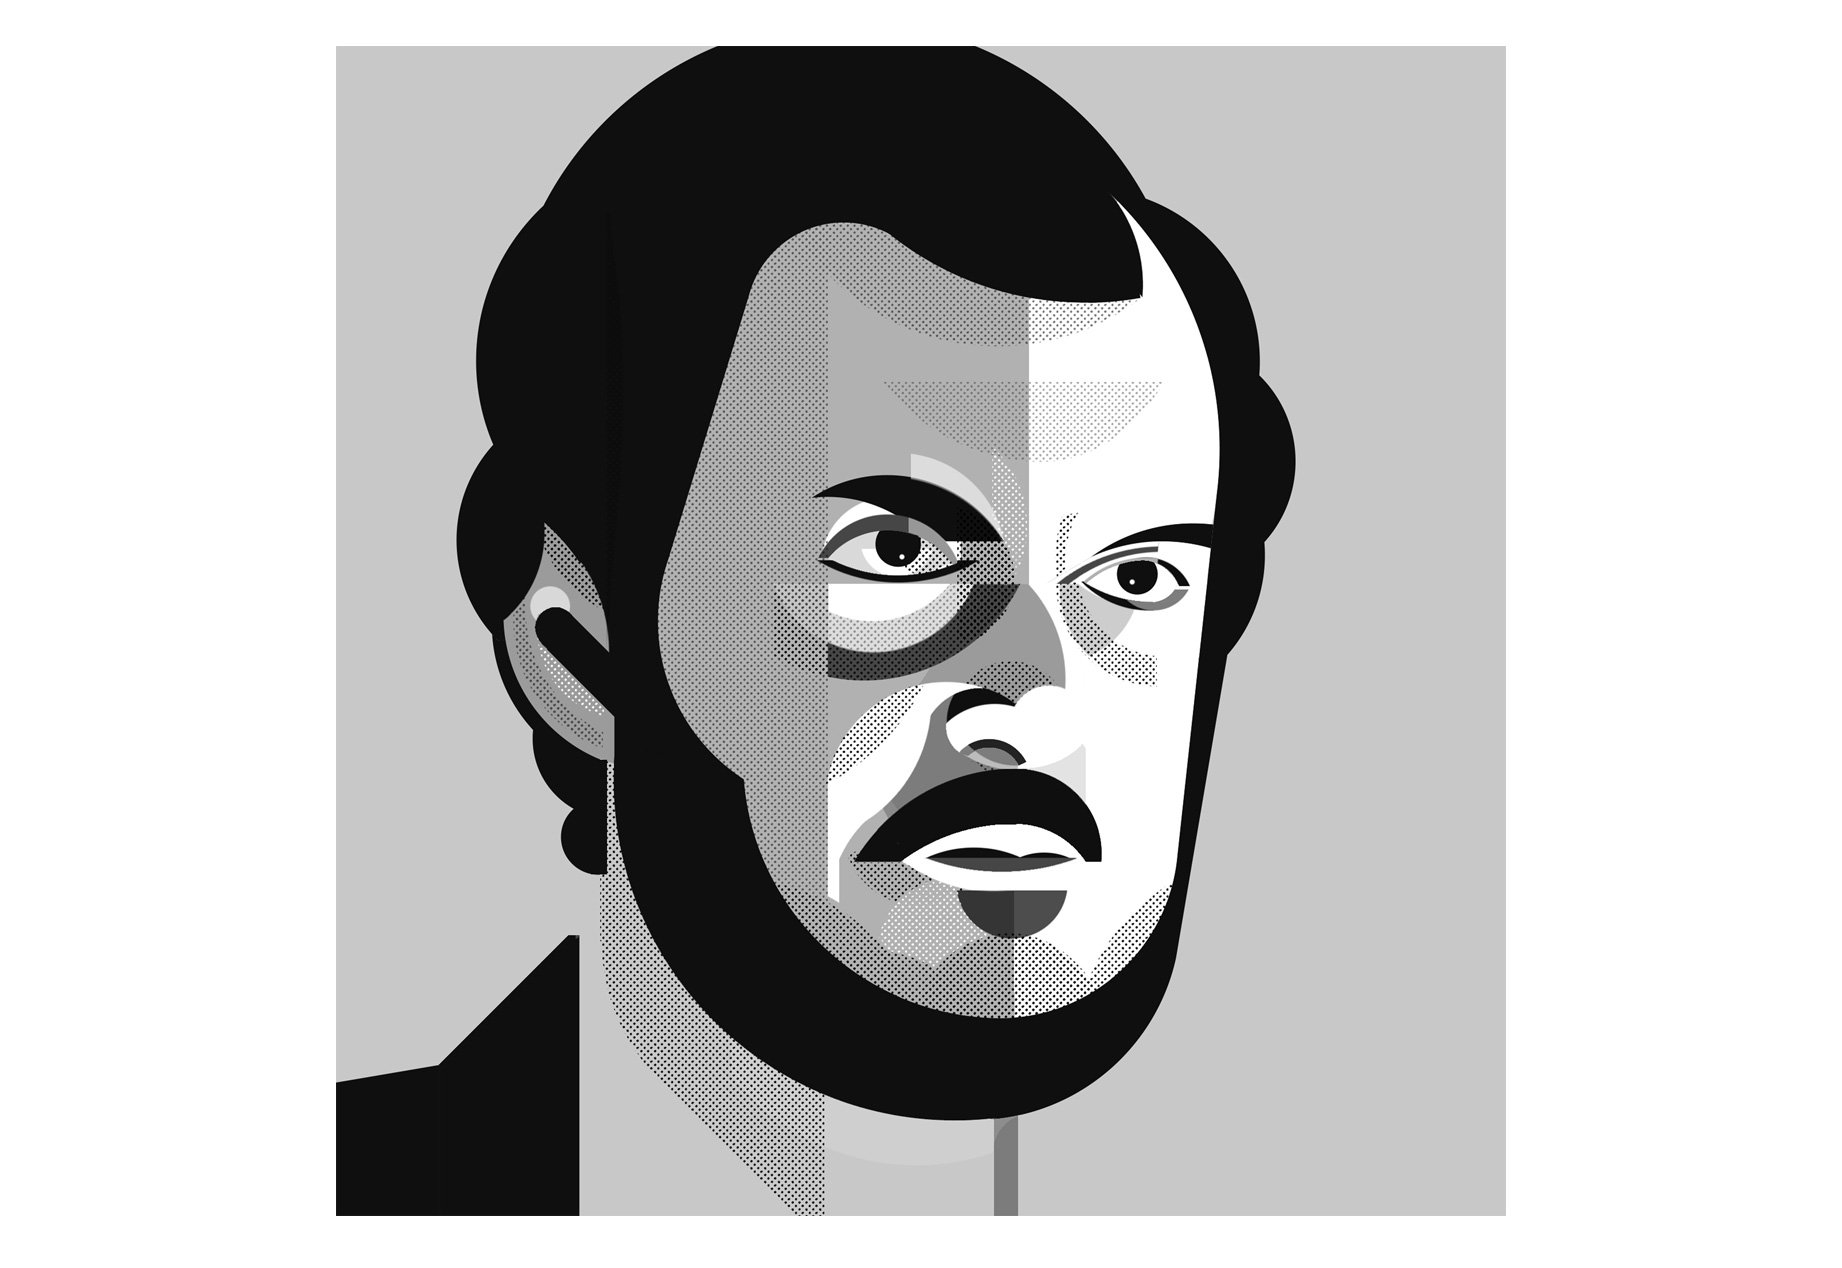 kubrick-illustrated-portrait-01-alice-iuri